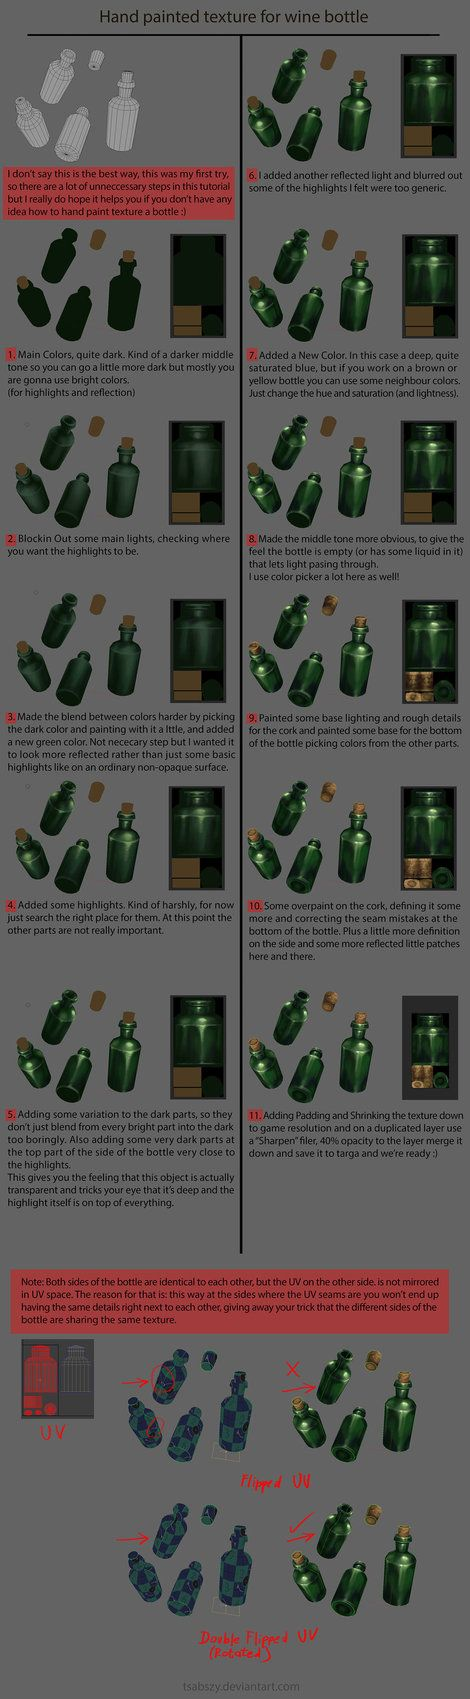 How to paint glass bottles painting drawing resource tool how to tutorial instructions   Create your own roleplaying game material w/ RPG Bard: www.rpgbard.com   Writing inspiration for Dungeons and Dragons DND D&D Pathfinder PFRPG Warhammer 40k Star Wars Shadowrun Call of Cthulhu Lord of the Rings LoTR + d20 fantasy science fiction scifi horror design   Not Trusty Sword art: click artwork for source